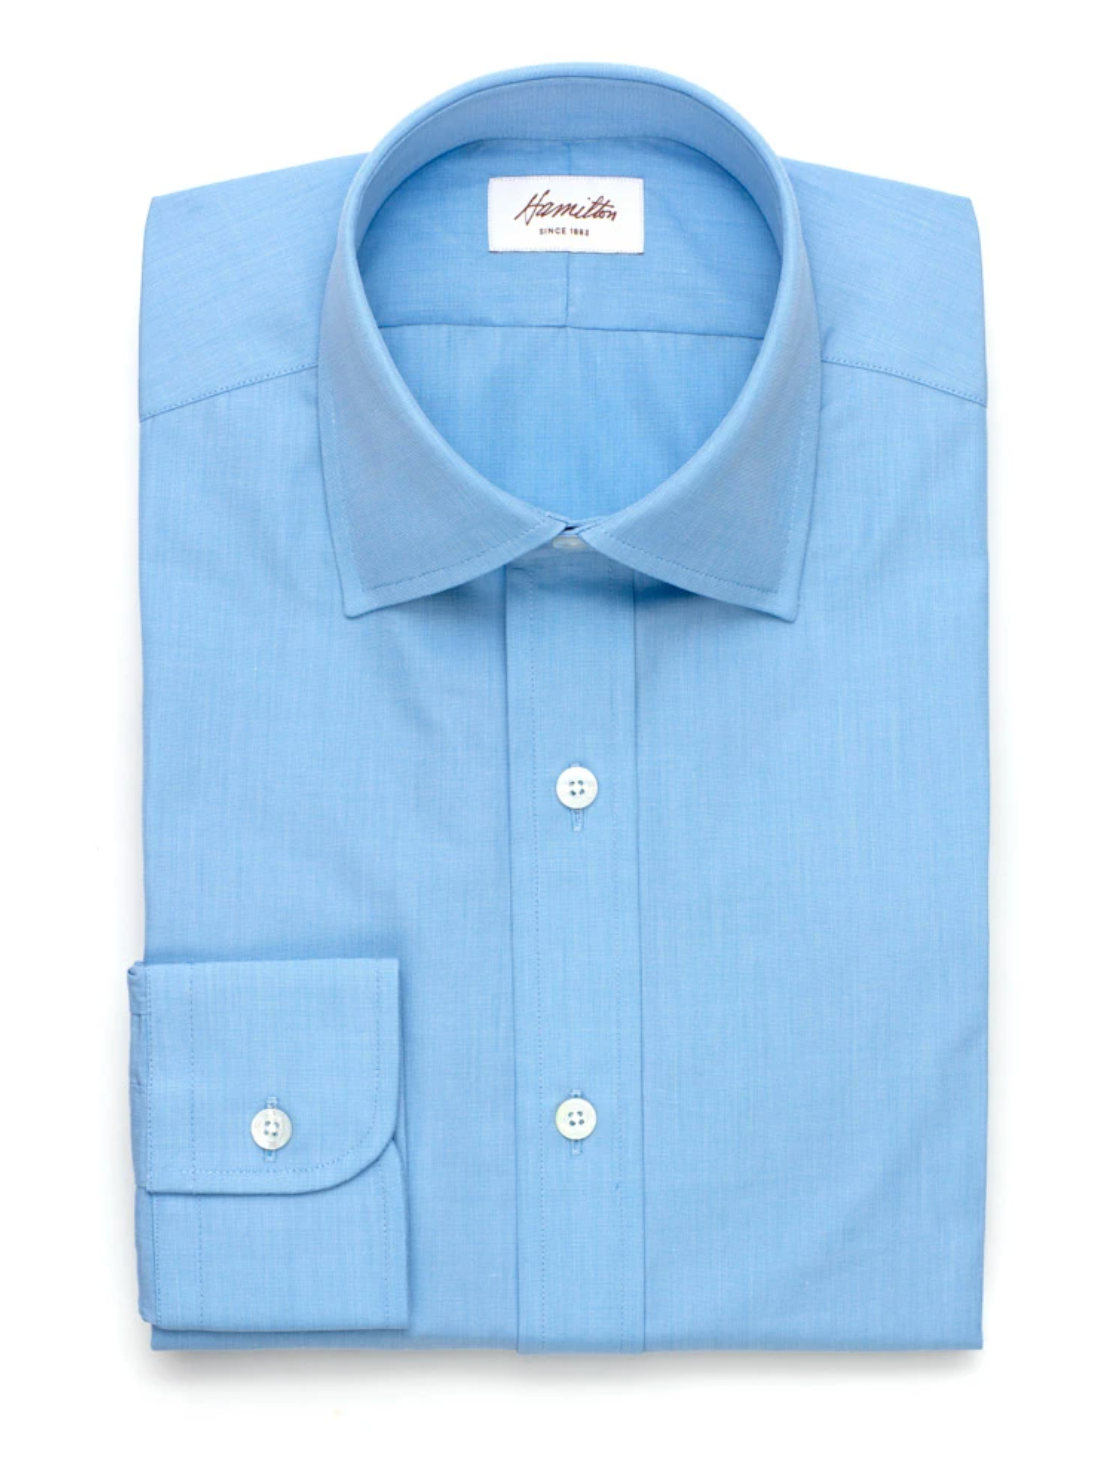 Hamilton End-on-End Poplin Shirt, Trim